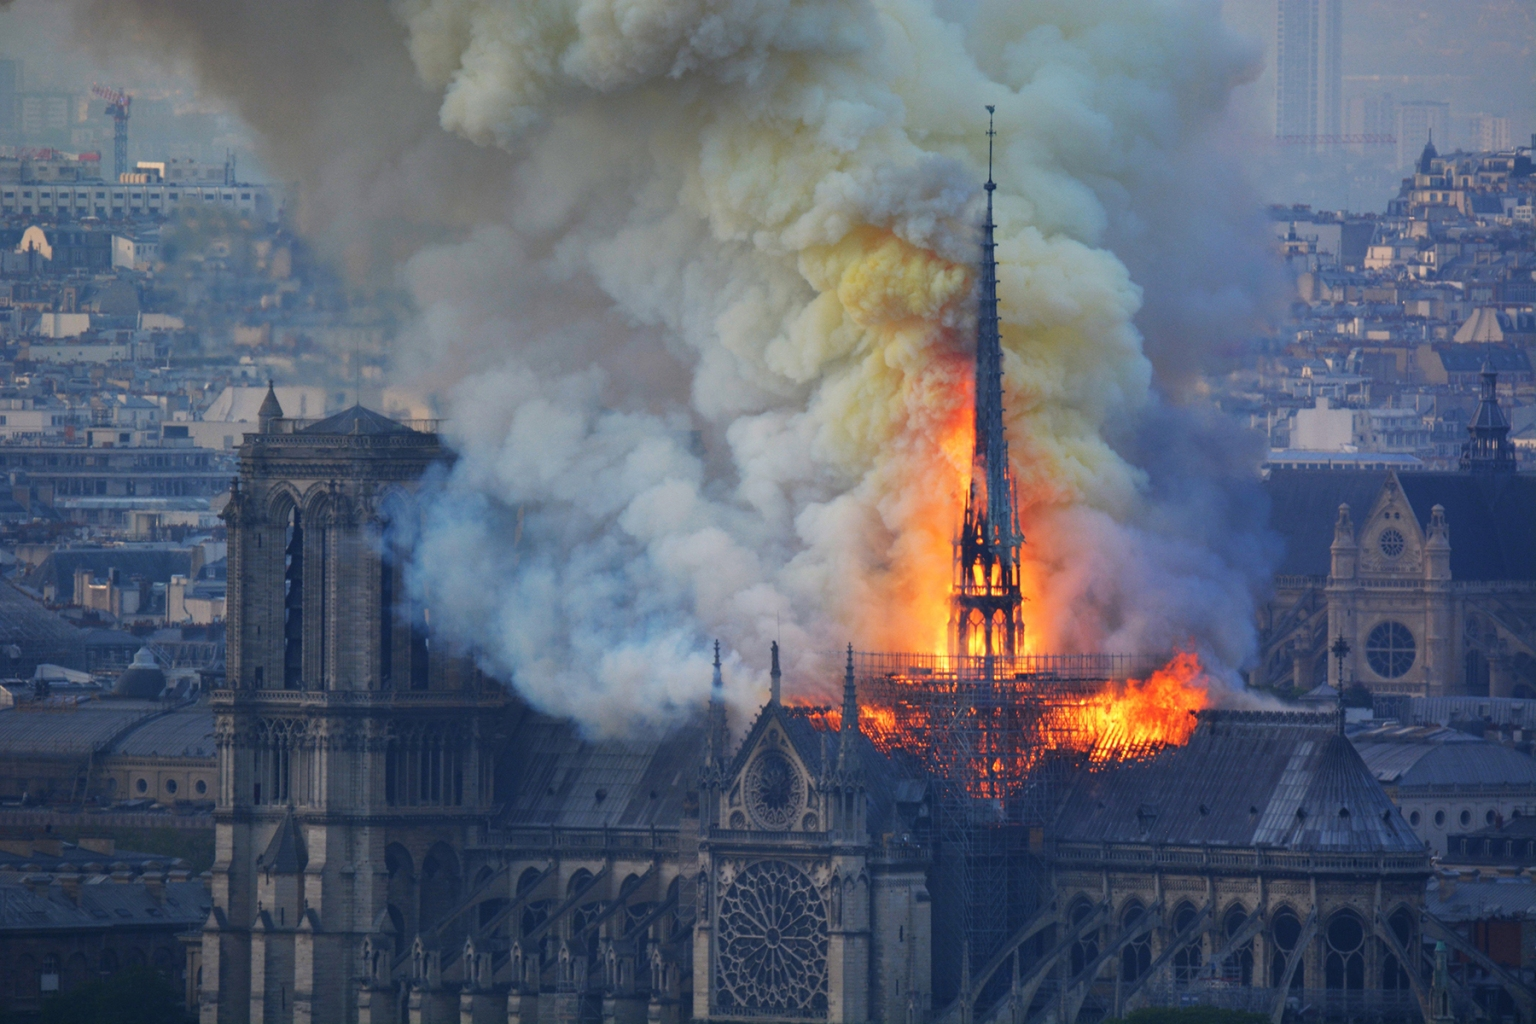 Smoke and flames engulf the spire and roof of the the Notre Dame Cathedral in Paris on April 15. The church was constructed betwen 1163 and 1345. (Hubert Hitier/AFP/Getty Images)